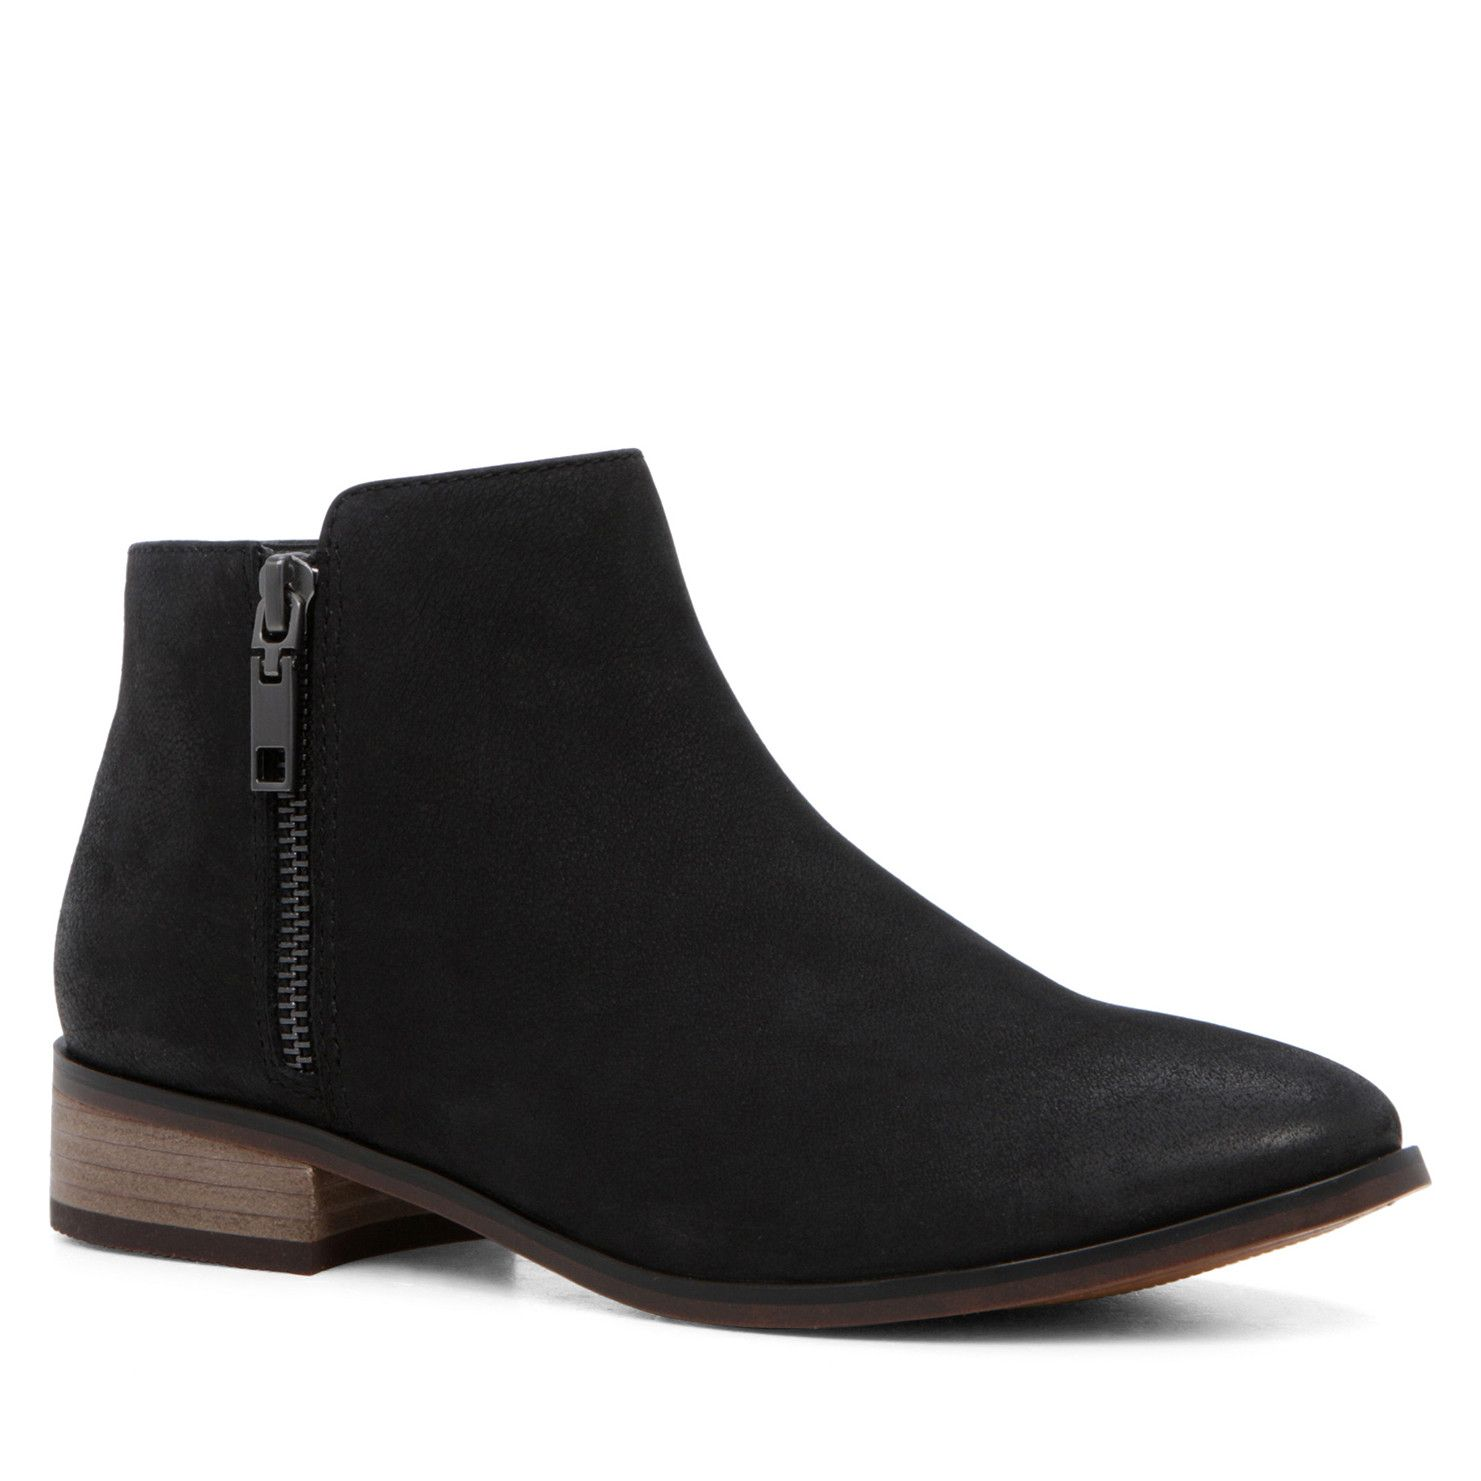 Julianna Ankle Boots | Women's Boots | ALDOShoes.com | Shoes and ...